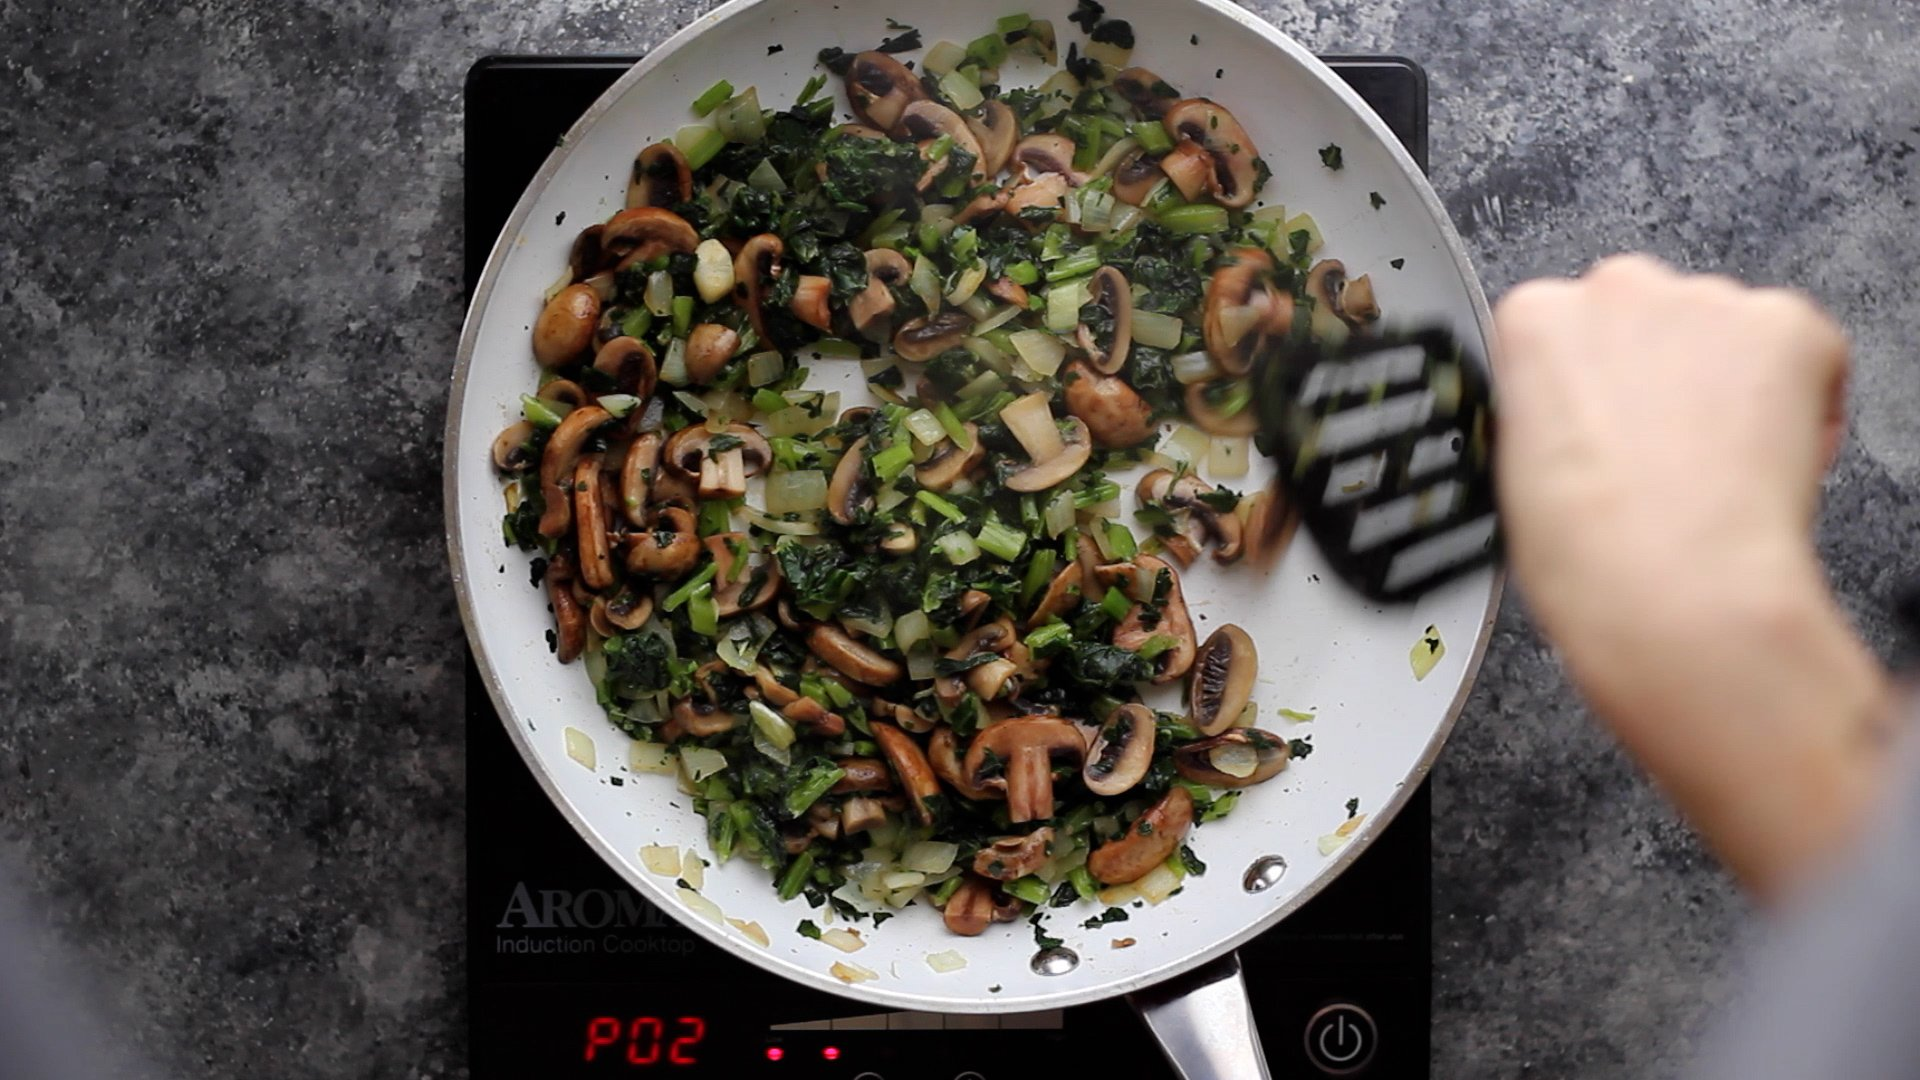 sauteeing onions, mushrooms and kale